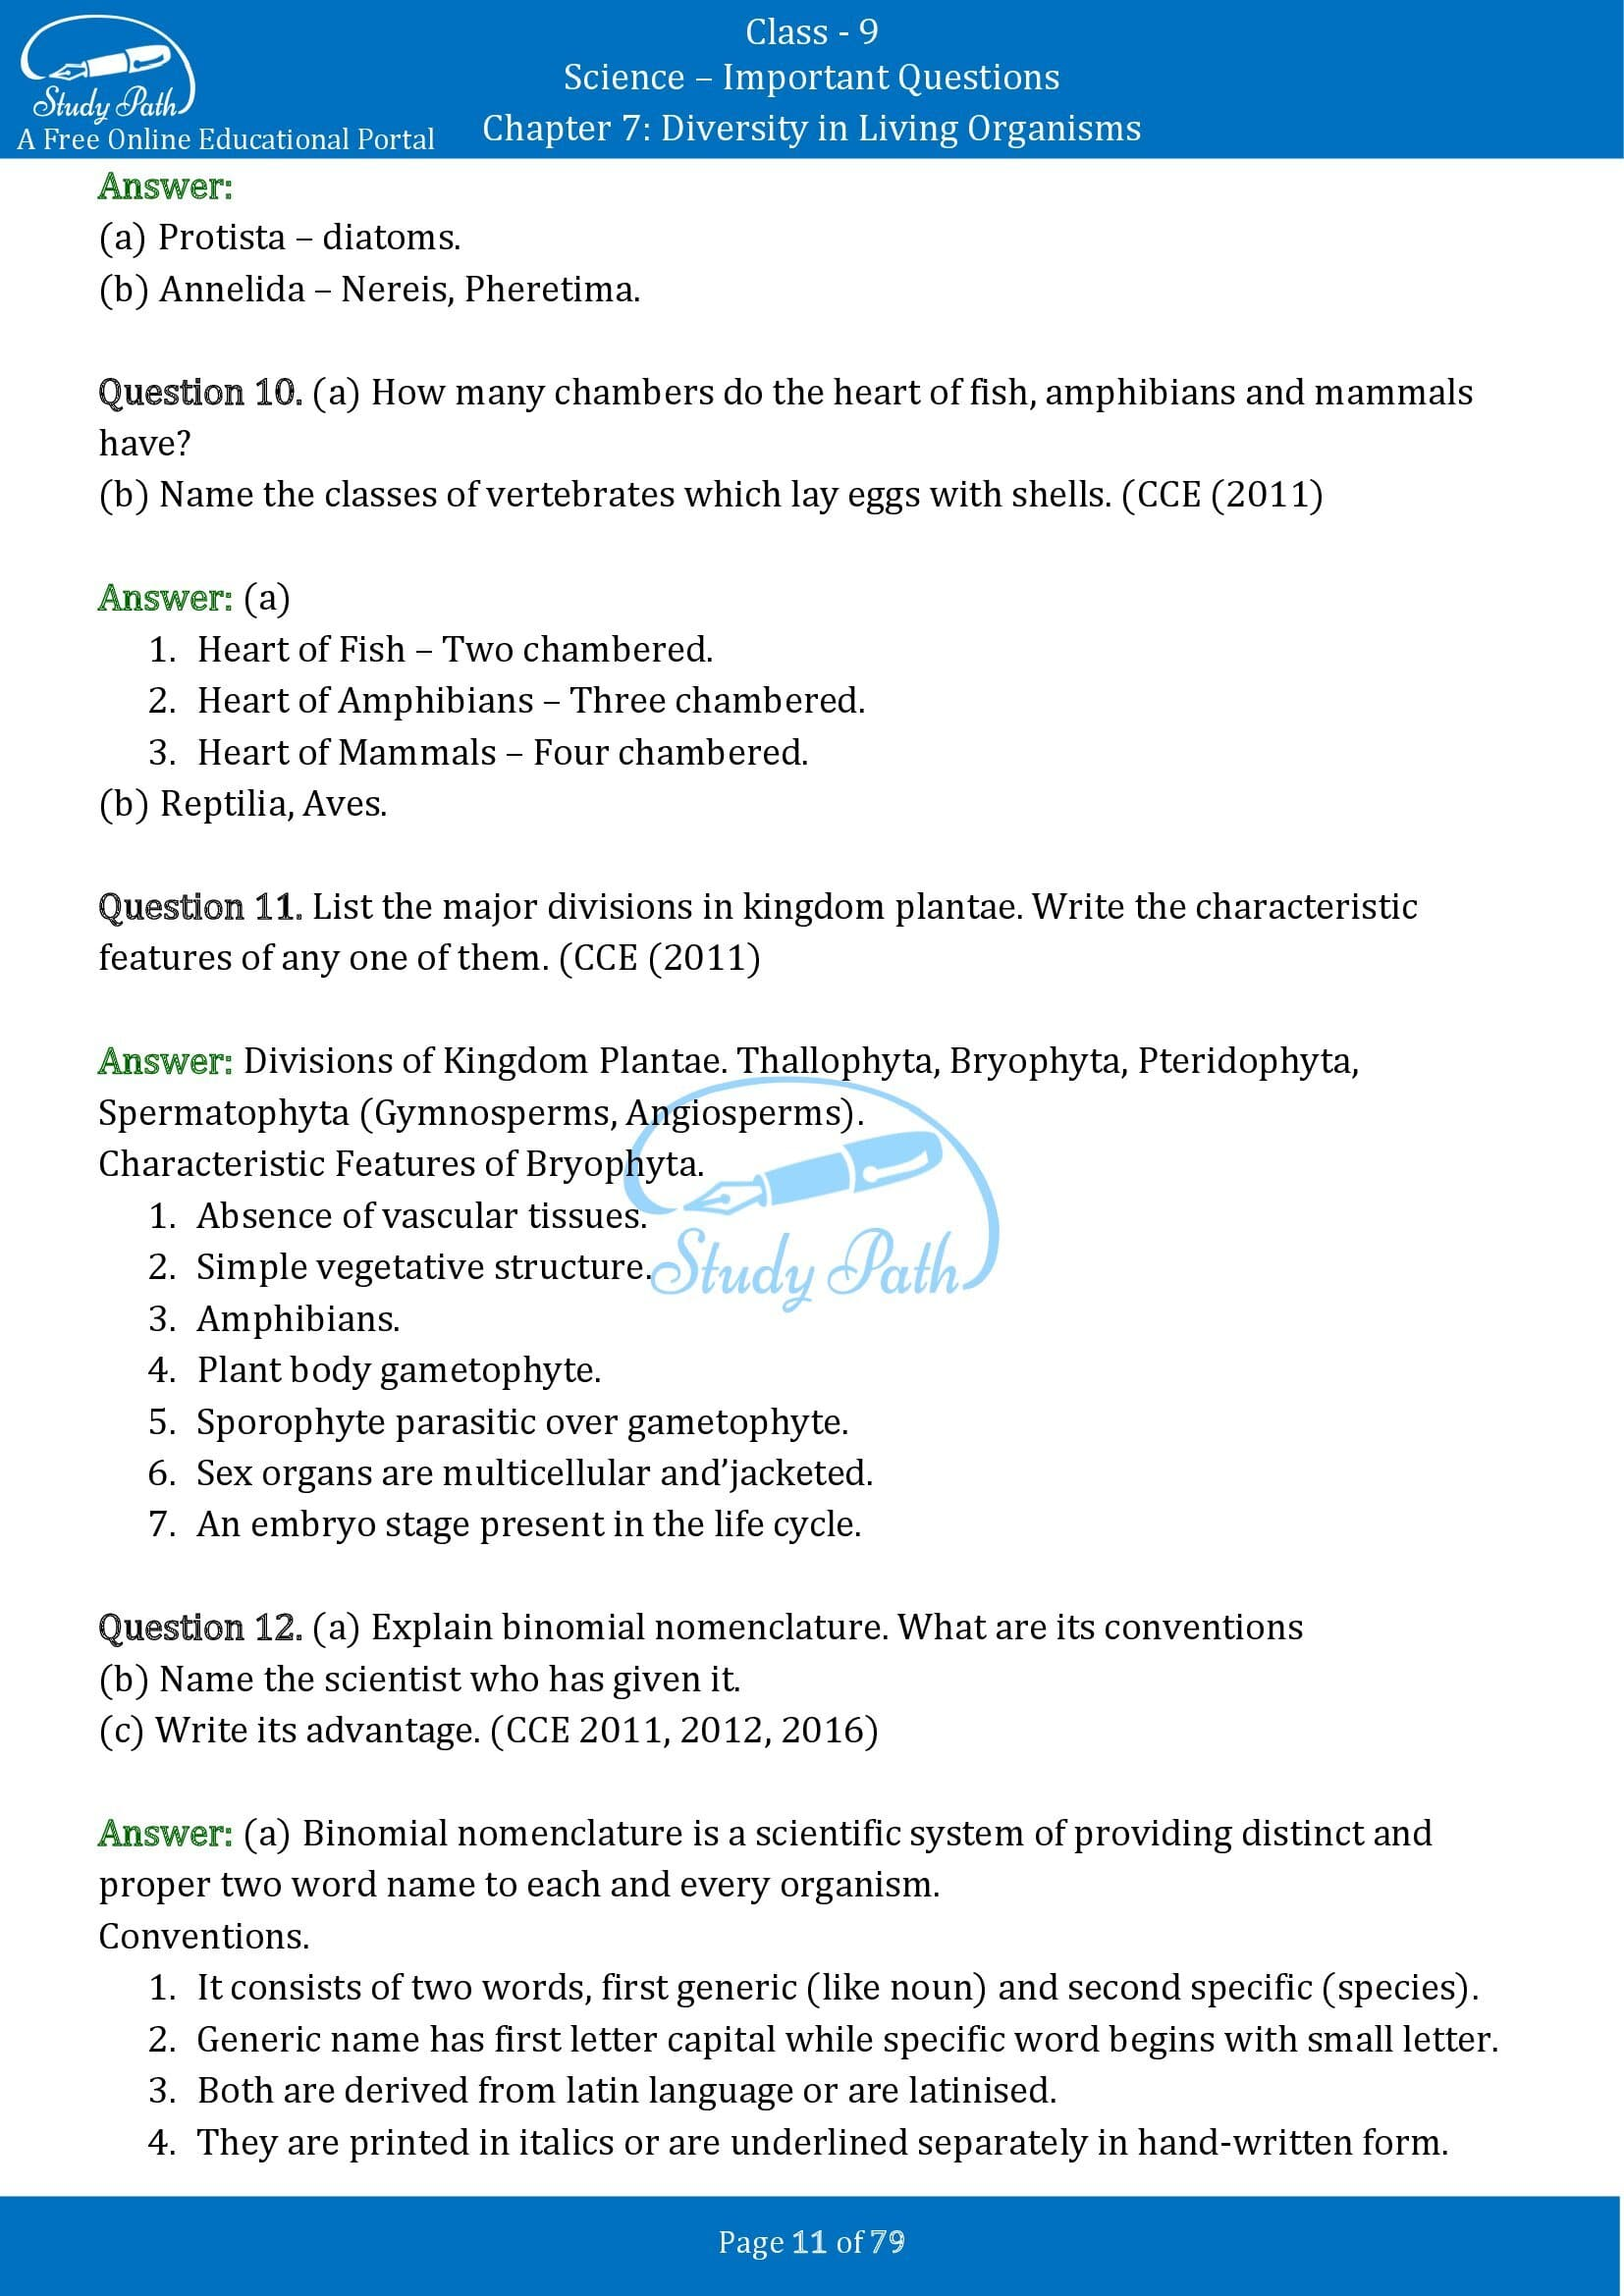 Important Questions for Class 9 Science Chapter 7 Diversity in Living Organisms 00011